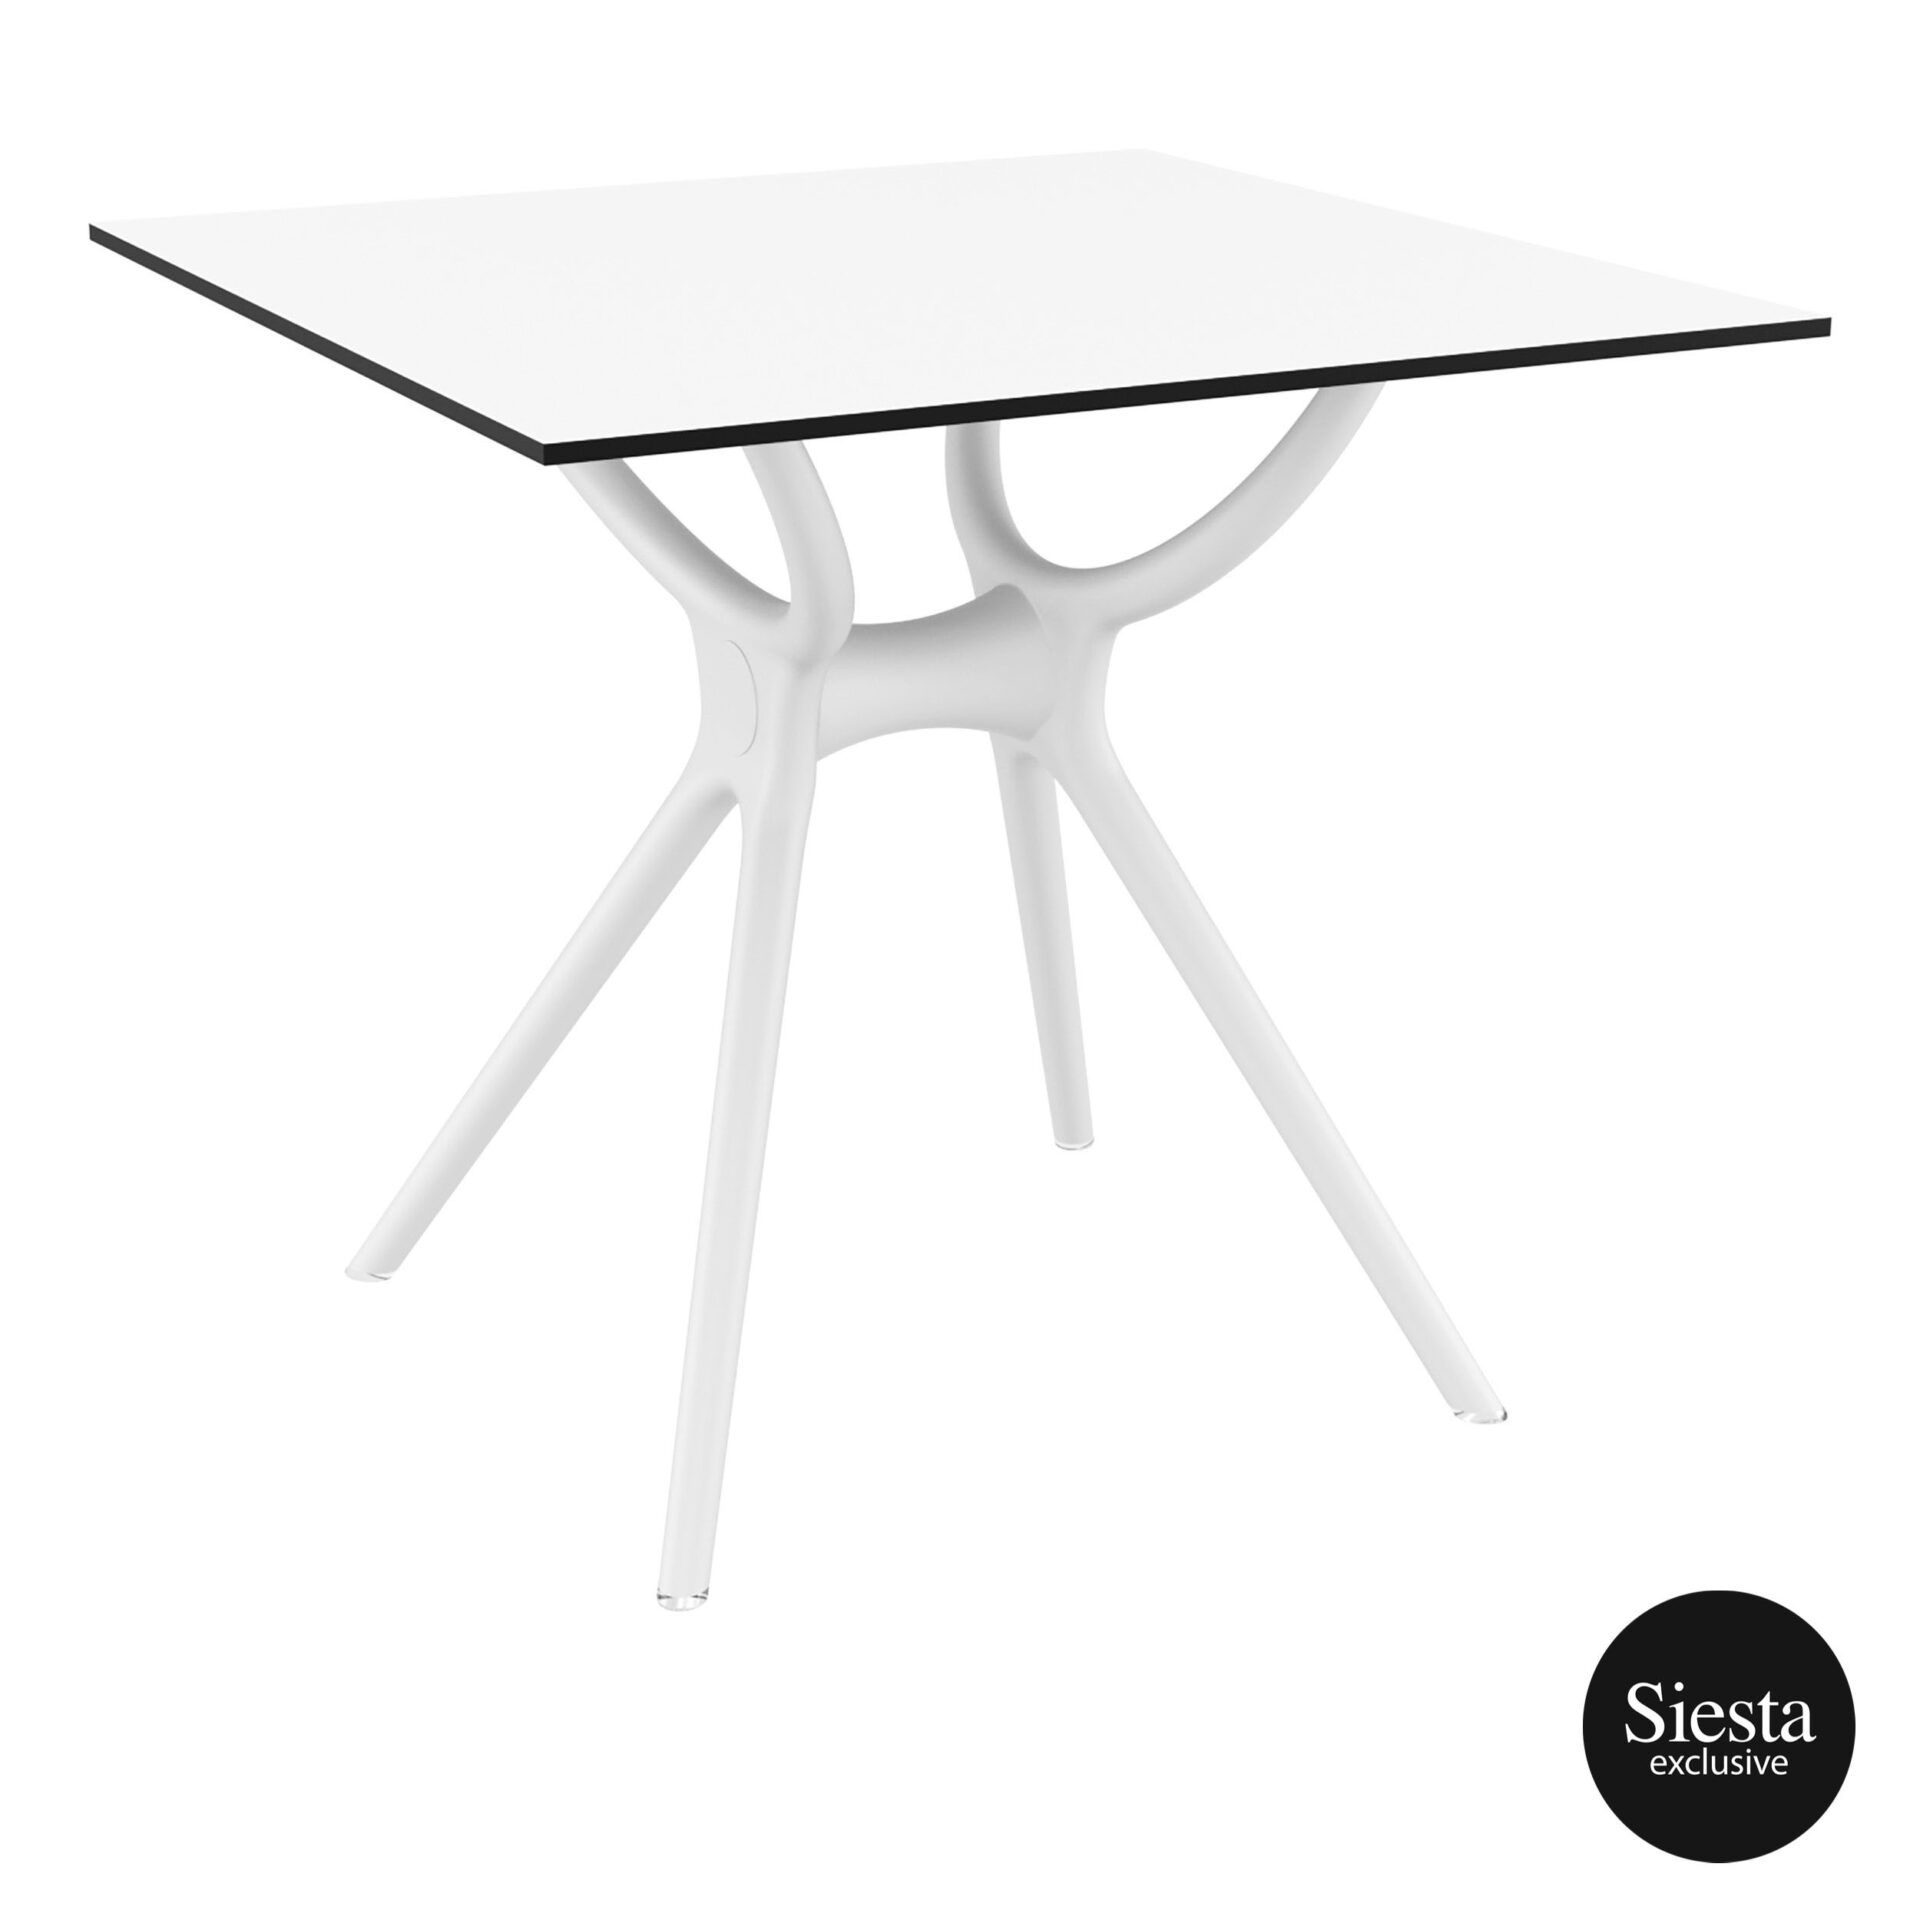 polypropylene hospitality air table 80 white front side